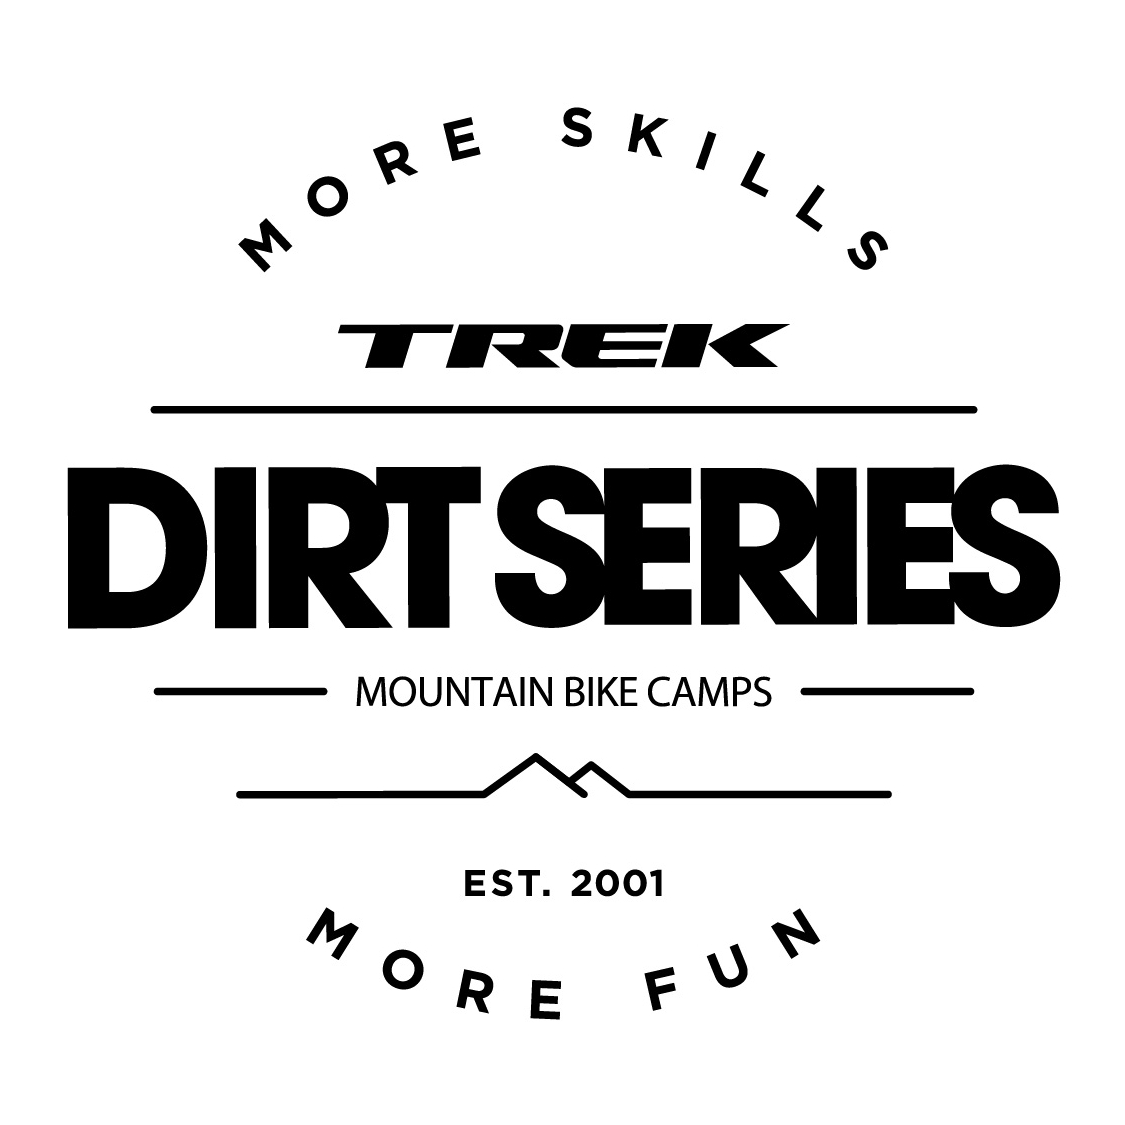 Dirt Series Mountain Bike Camp - Los Gatos, CA